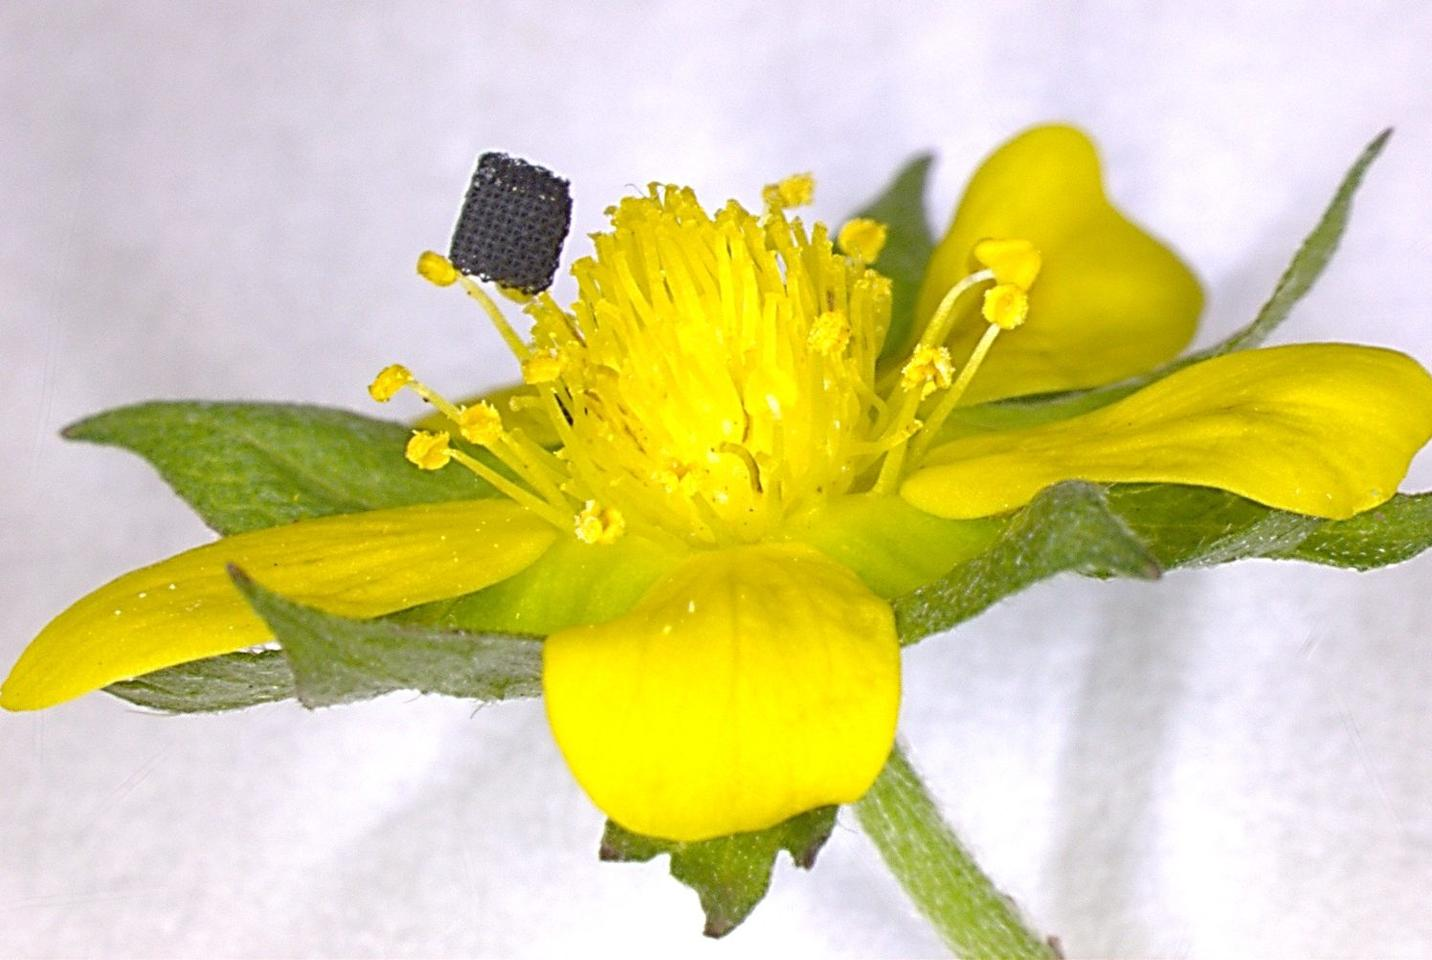 New 3D printing process paints graphene aerogel in far finer